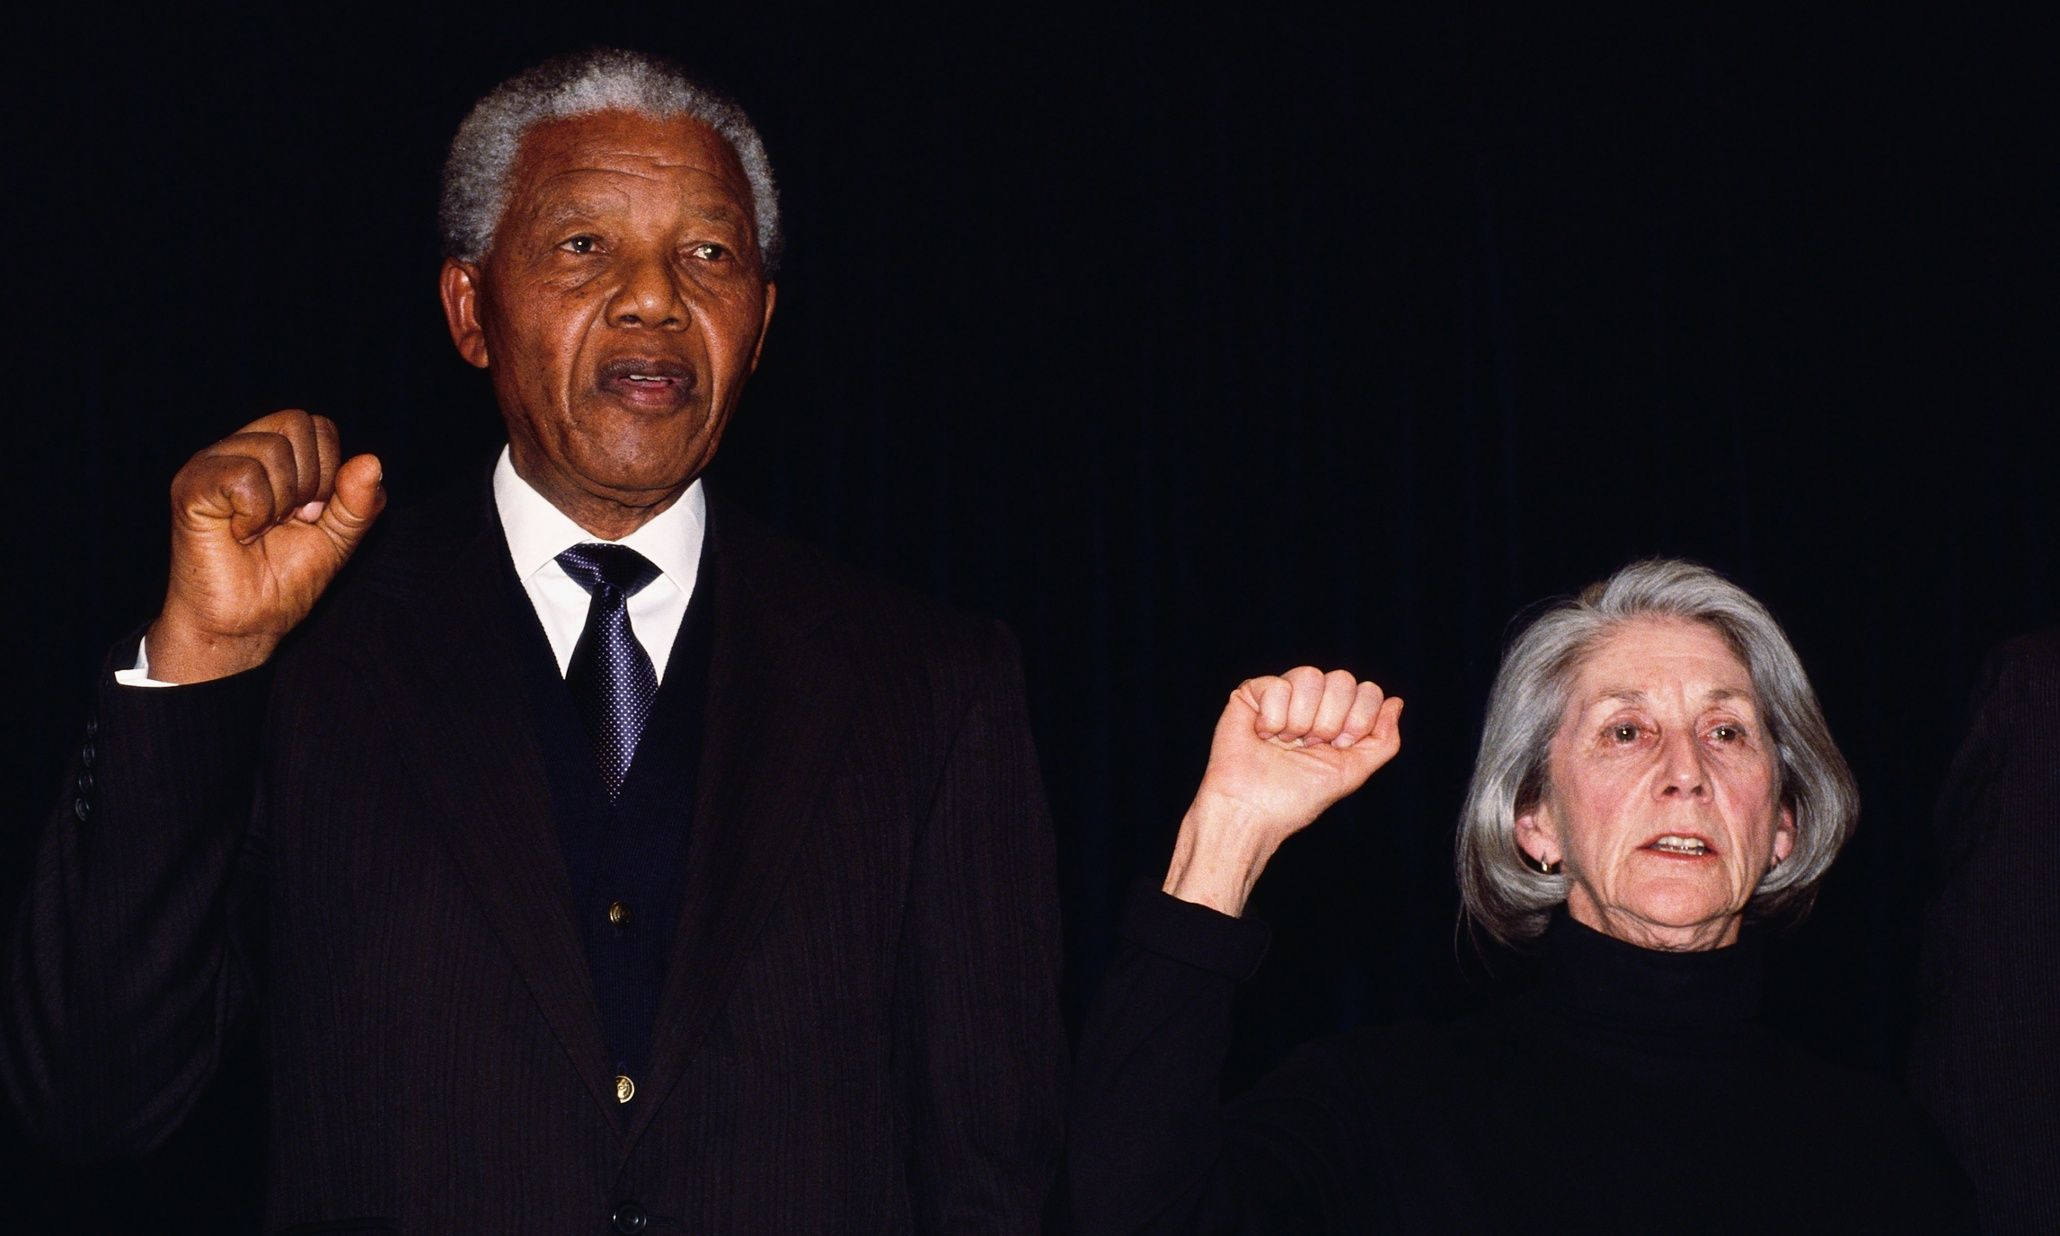 29 May 1993, Johannesburg, South Africa --- Johannesburg, South Africa: Nelson Mandela and author Nadine Gordimer sing National Liberation Anthem at Ghandi Memorial - Former President of South Africa and longtime political prisoner, held by the Apartheid based government from 1964-1990 for sabotage. With the coming of a freer political climate, Mandela was released from his life sentence at Victor Vester Prison on February 11, of 1990. He went on to lead the African National Congress in negotiations with President F.W. de Klerk, that resulted in the end of Apartheid and full citizenship for all South Africans. He and de Klerk received a joint Nobel Peace Prize in 1993 for their efforts. Mandela was elected president in 1994. --- Image by © Louise Gubb/CORBIS SABA